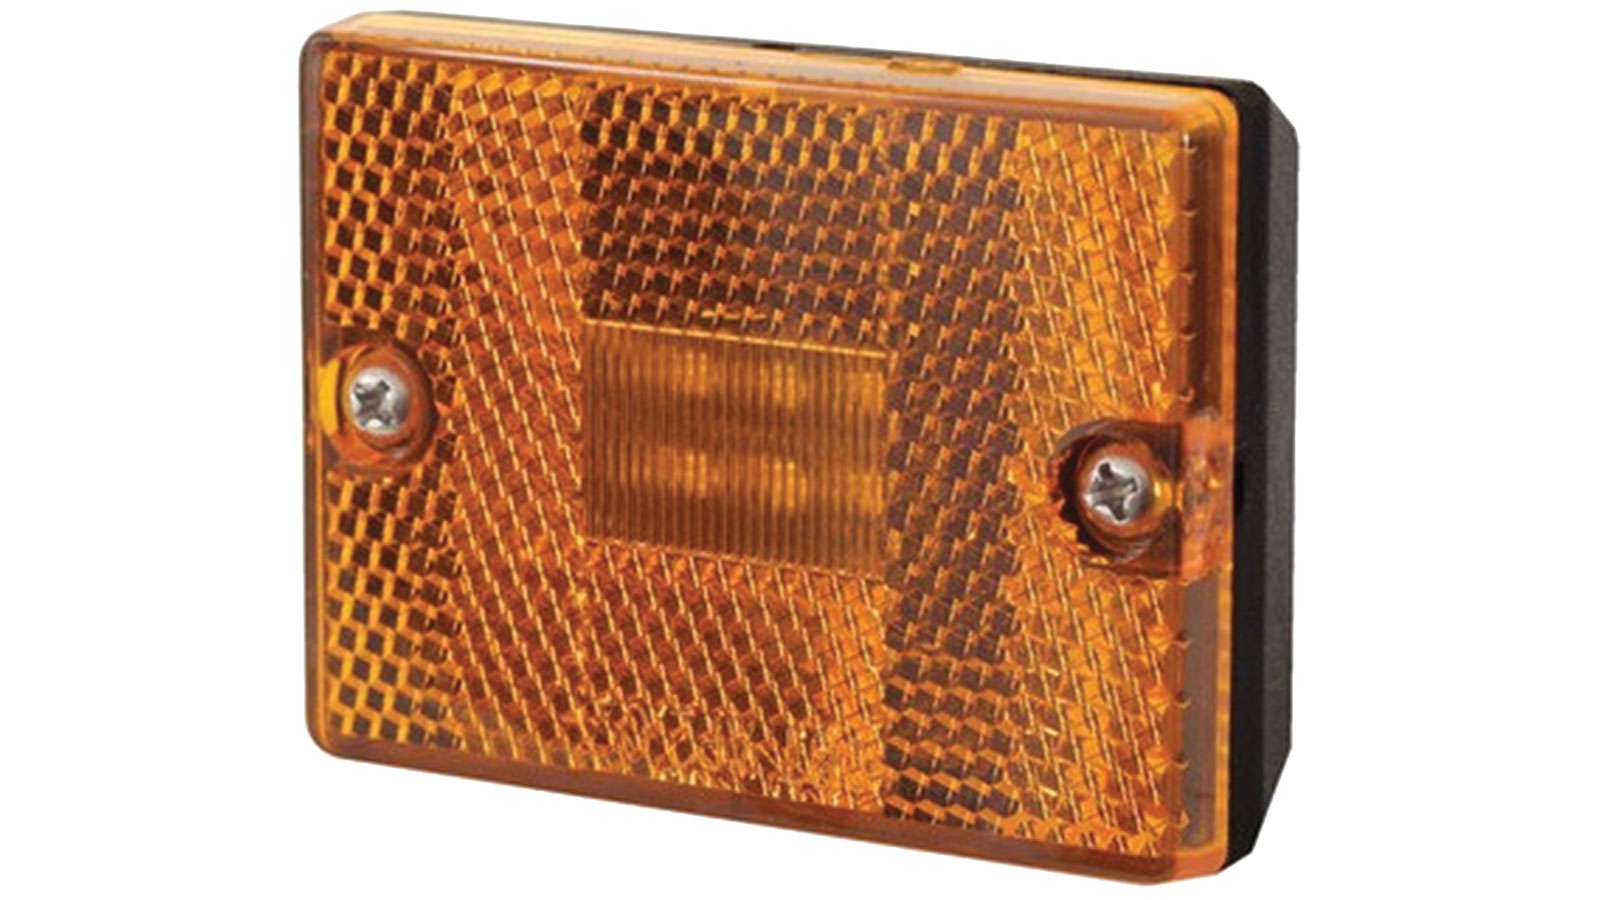 Optronics Square LED Marker Clearance Light 000 - Marine Supplies, Trailer Parts And Accessories at Academy Sports